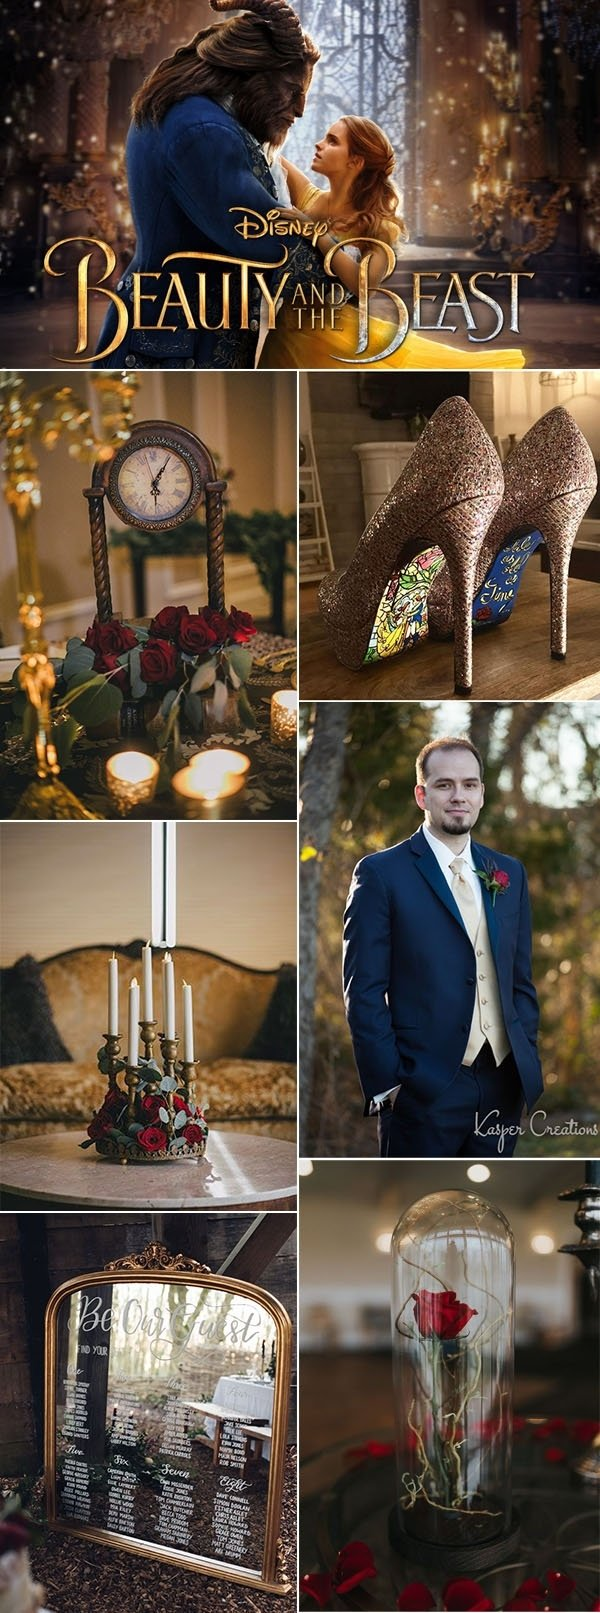 10 Gorgeous Beauty And The Beast Wedding Theme Ideas the perfect glitter and sparkle winter wedding ideascolor and